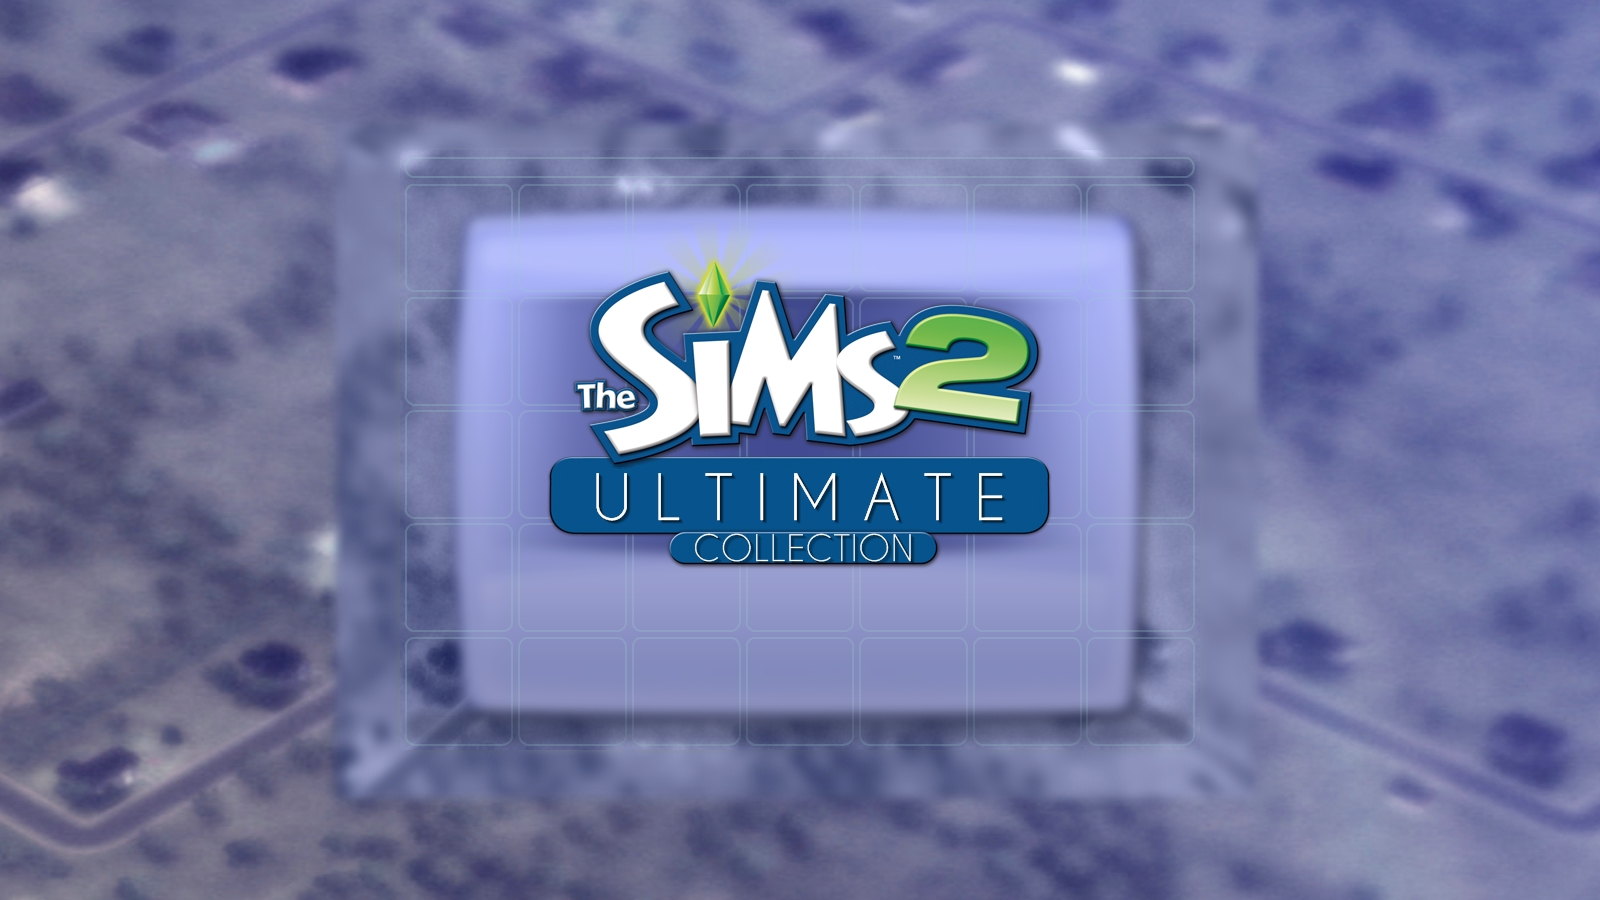 The Sims 2 Ultimate Collection (Sims 2 All in One)